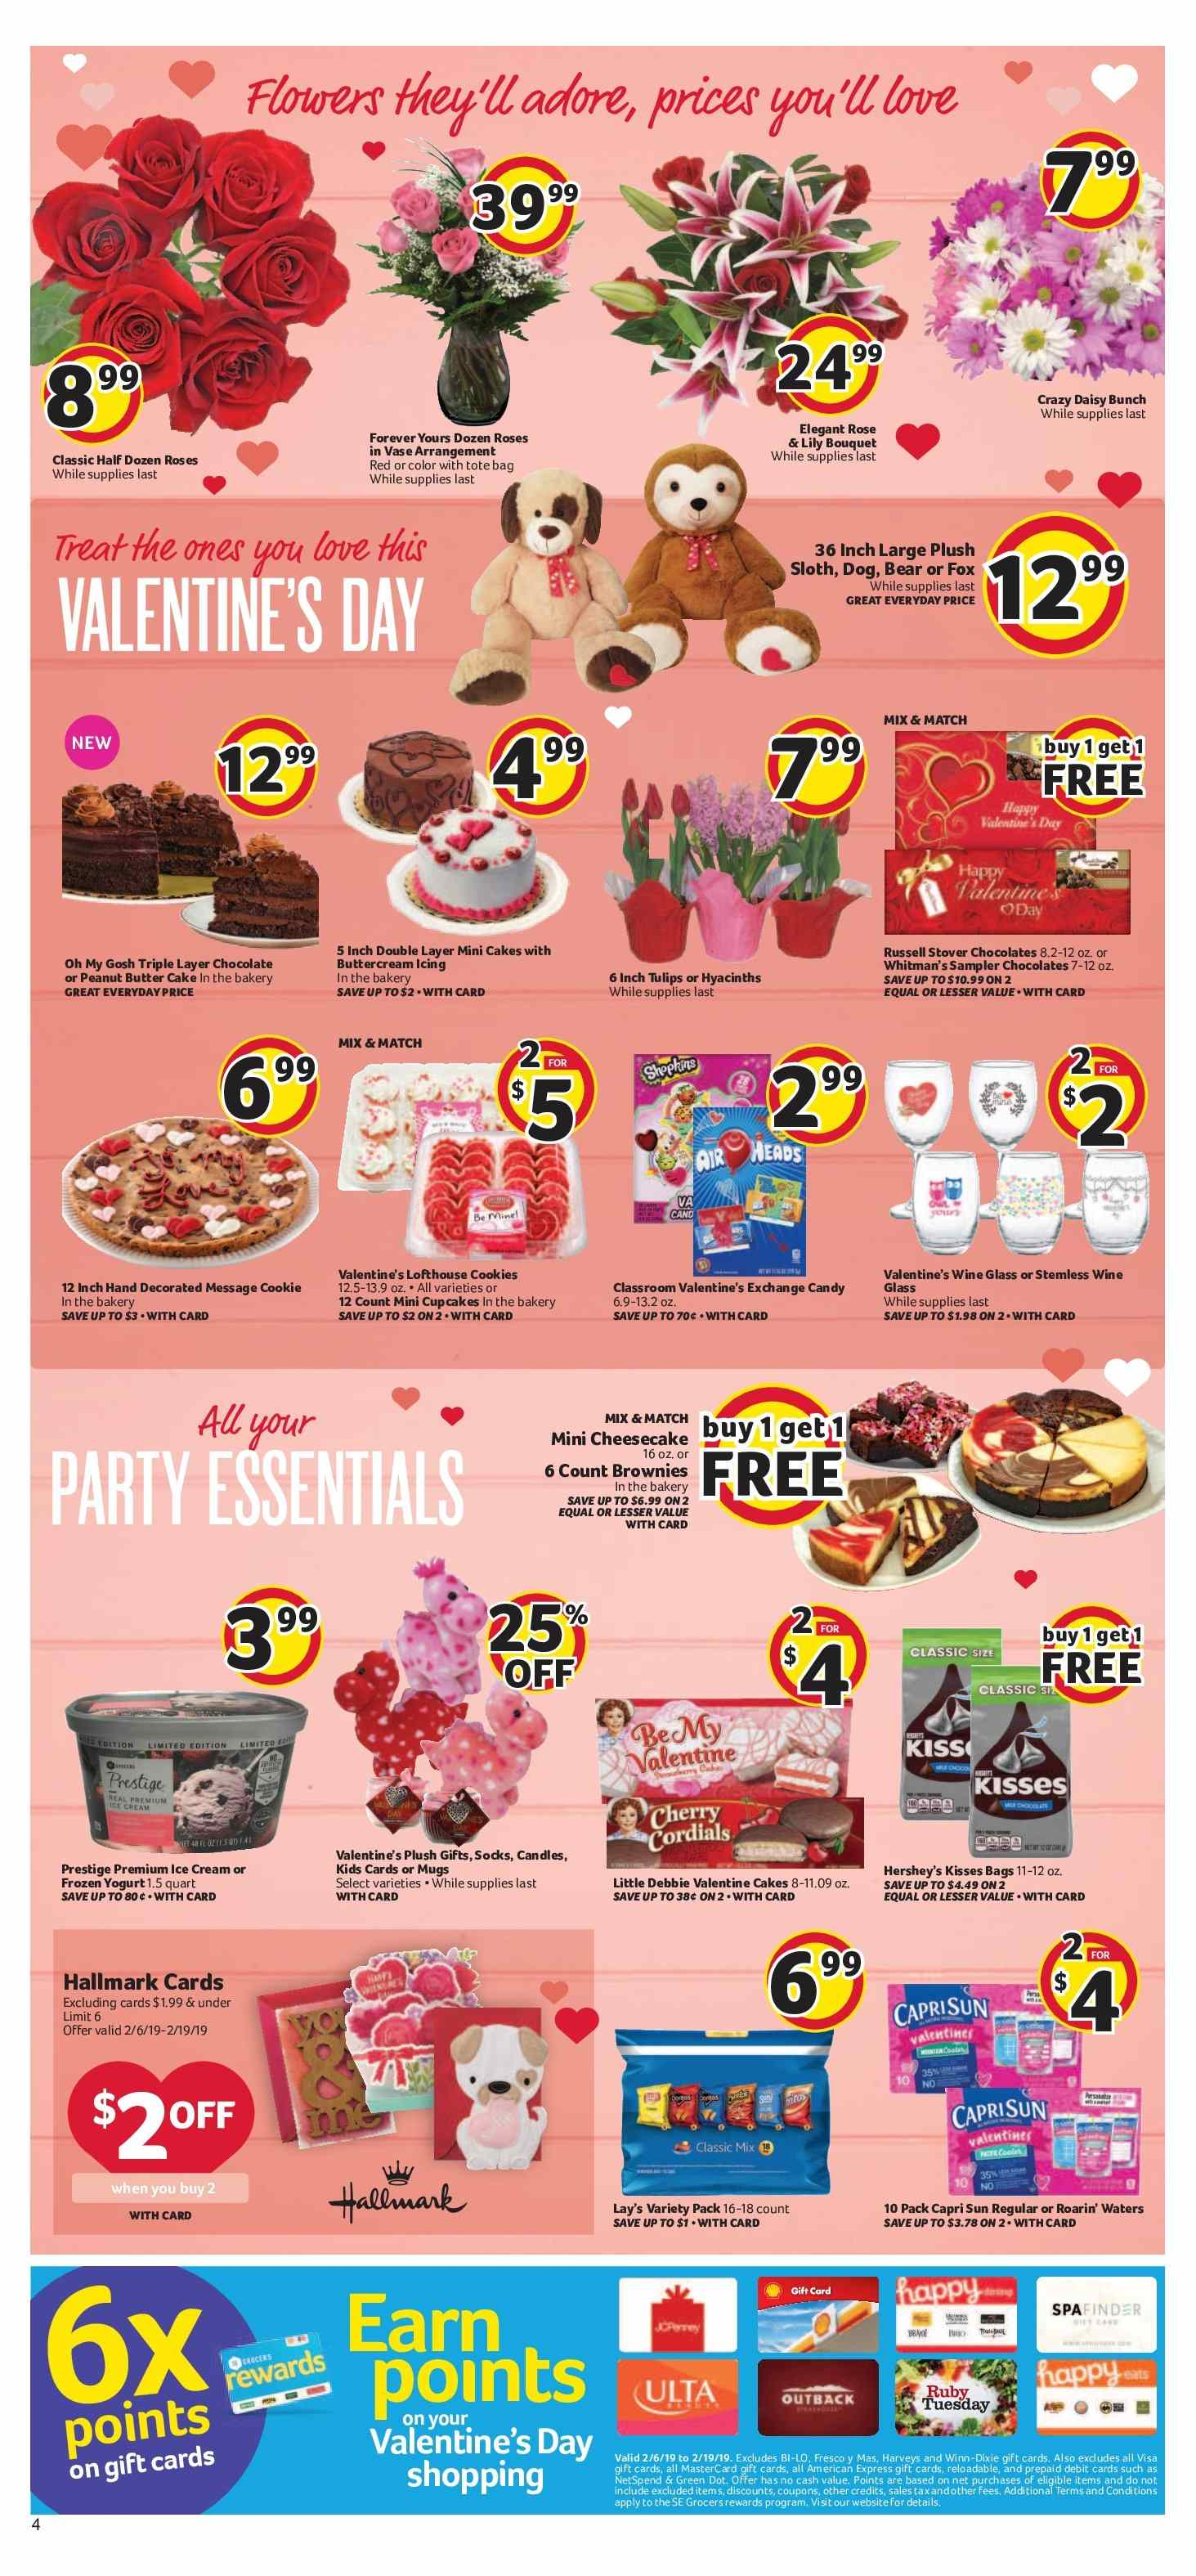 Winn Dixie Flyer - 02.06.2019 - 02.12.2019 - Sales products - bag, butter, candle, capri sun, cookies, cupcakes, forever, frozen, socks, wine glass, yogurt, ice cream, peanut butter, chocolate, cheesecake, cake, candy, roses, tote, lay's, wine, valentine. Page 4.